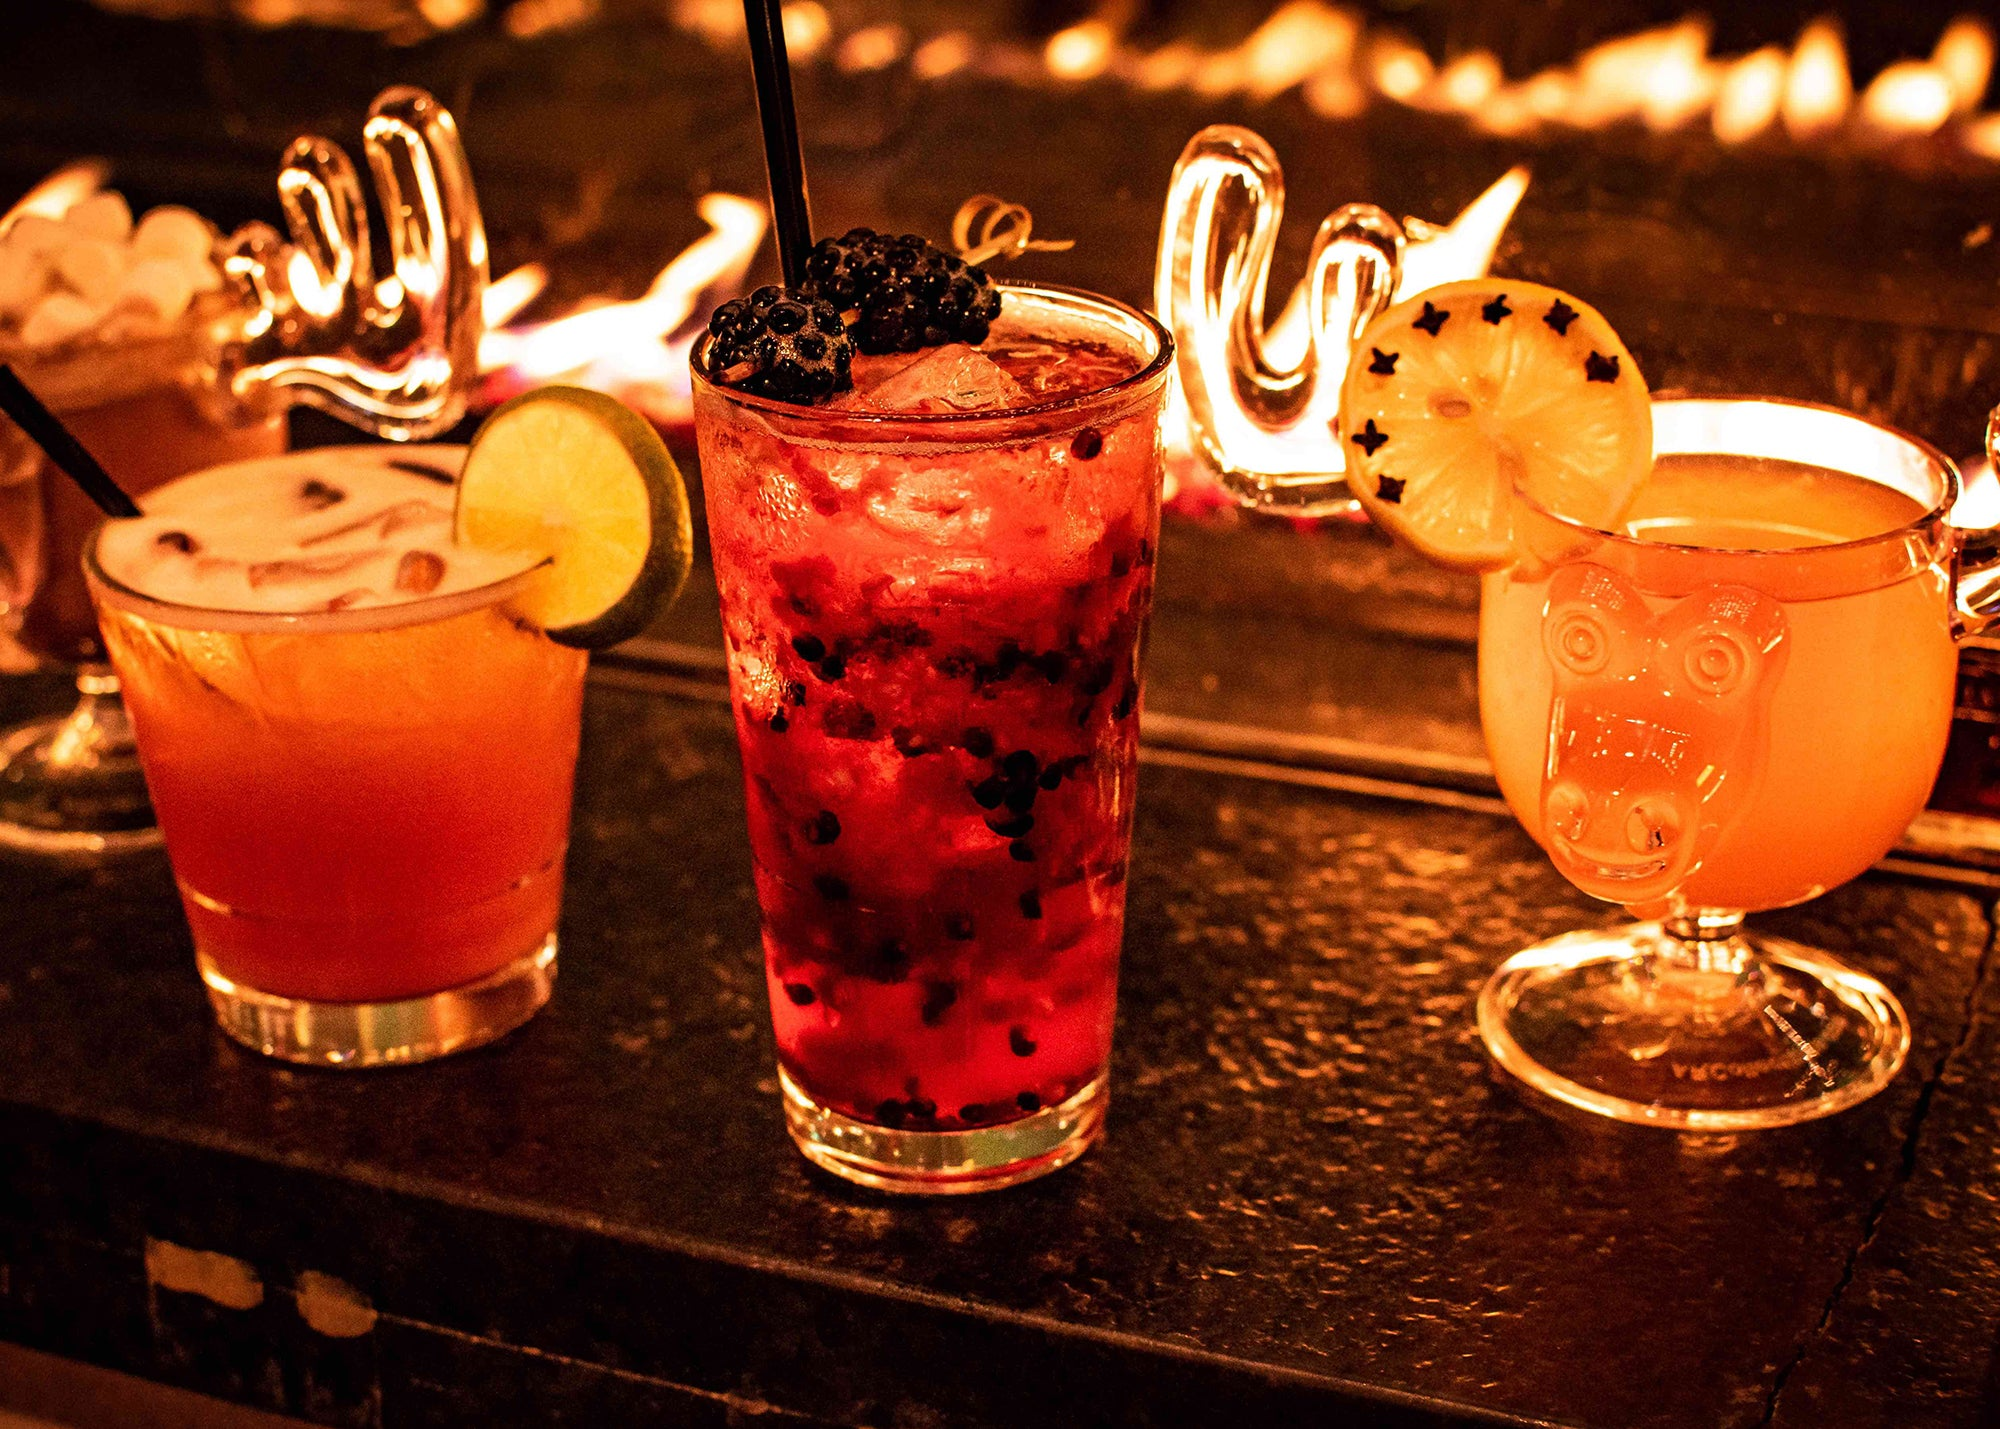 Holiday drinks at The Lodge at Publico